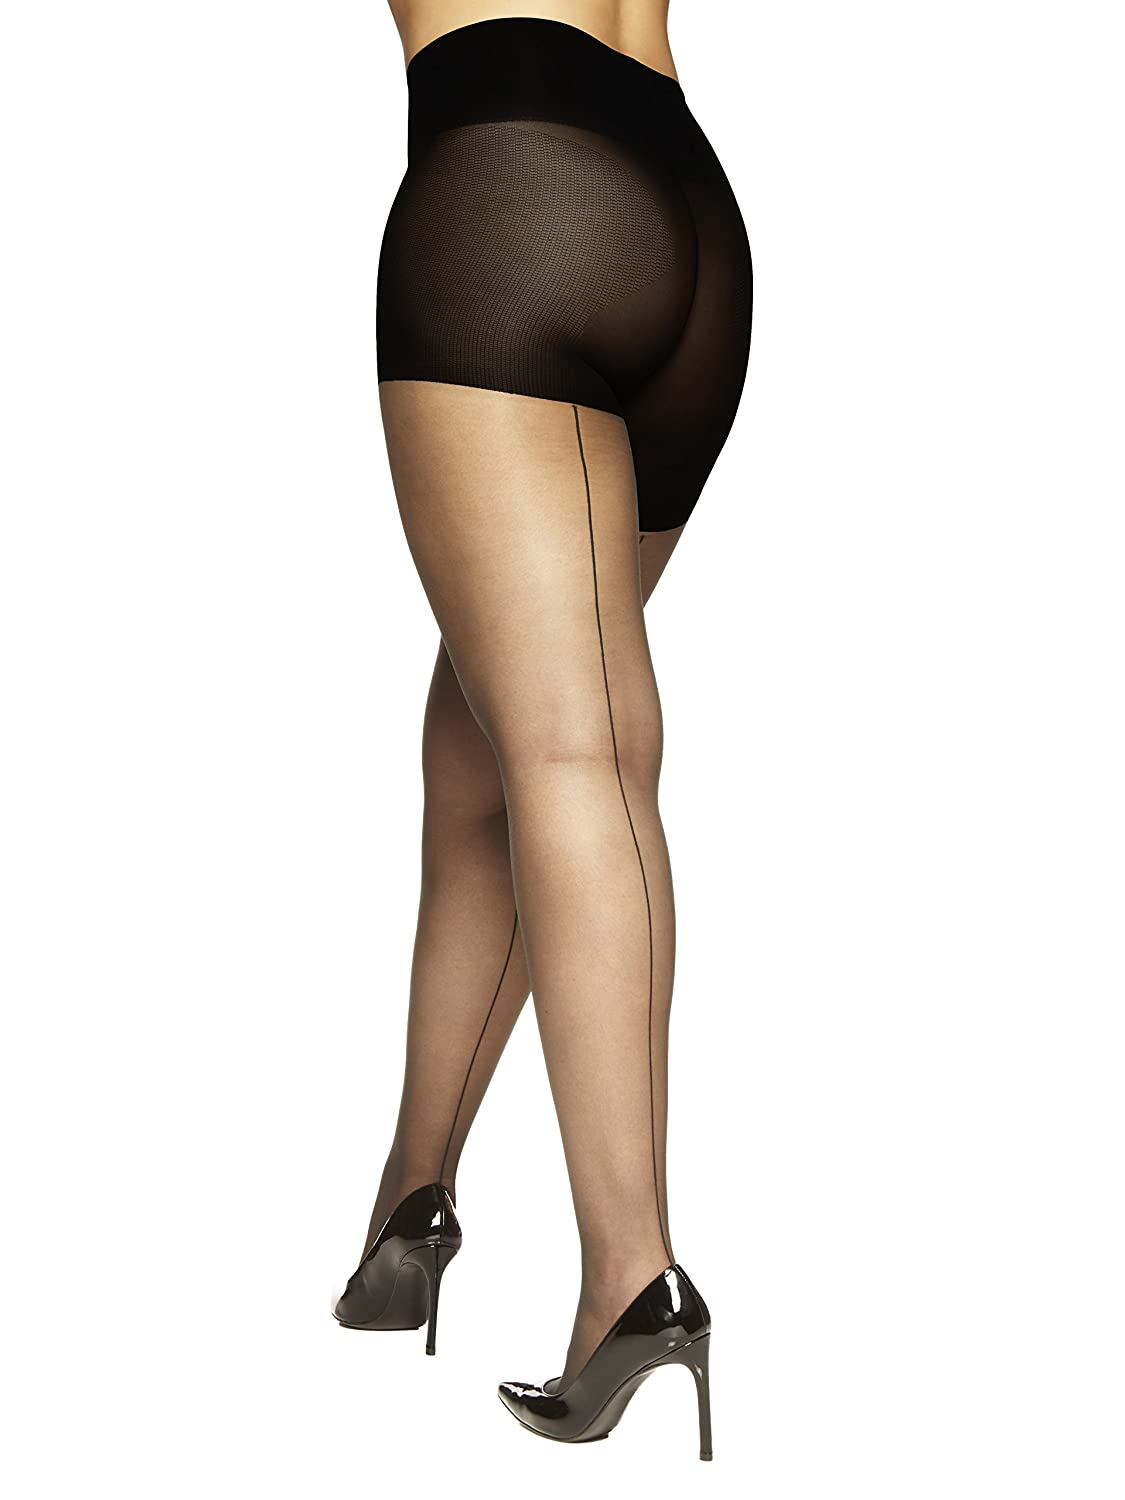 Vintage Inspired Lingerie Berkshire Womens Plus Size Luxury Queen Tummy Toner Backseam Pantyhose $16.00 AT vintagedancer.com